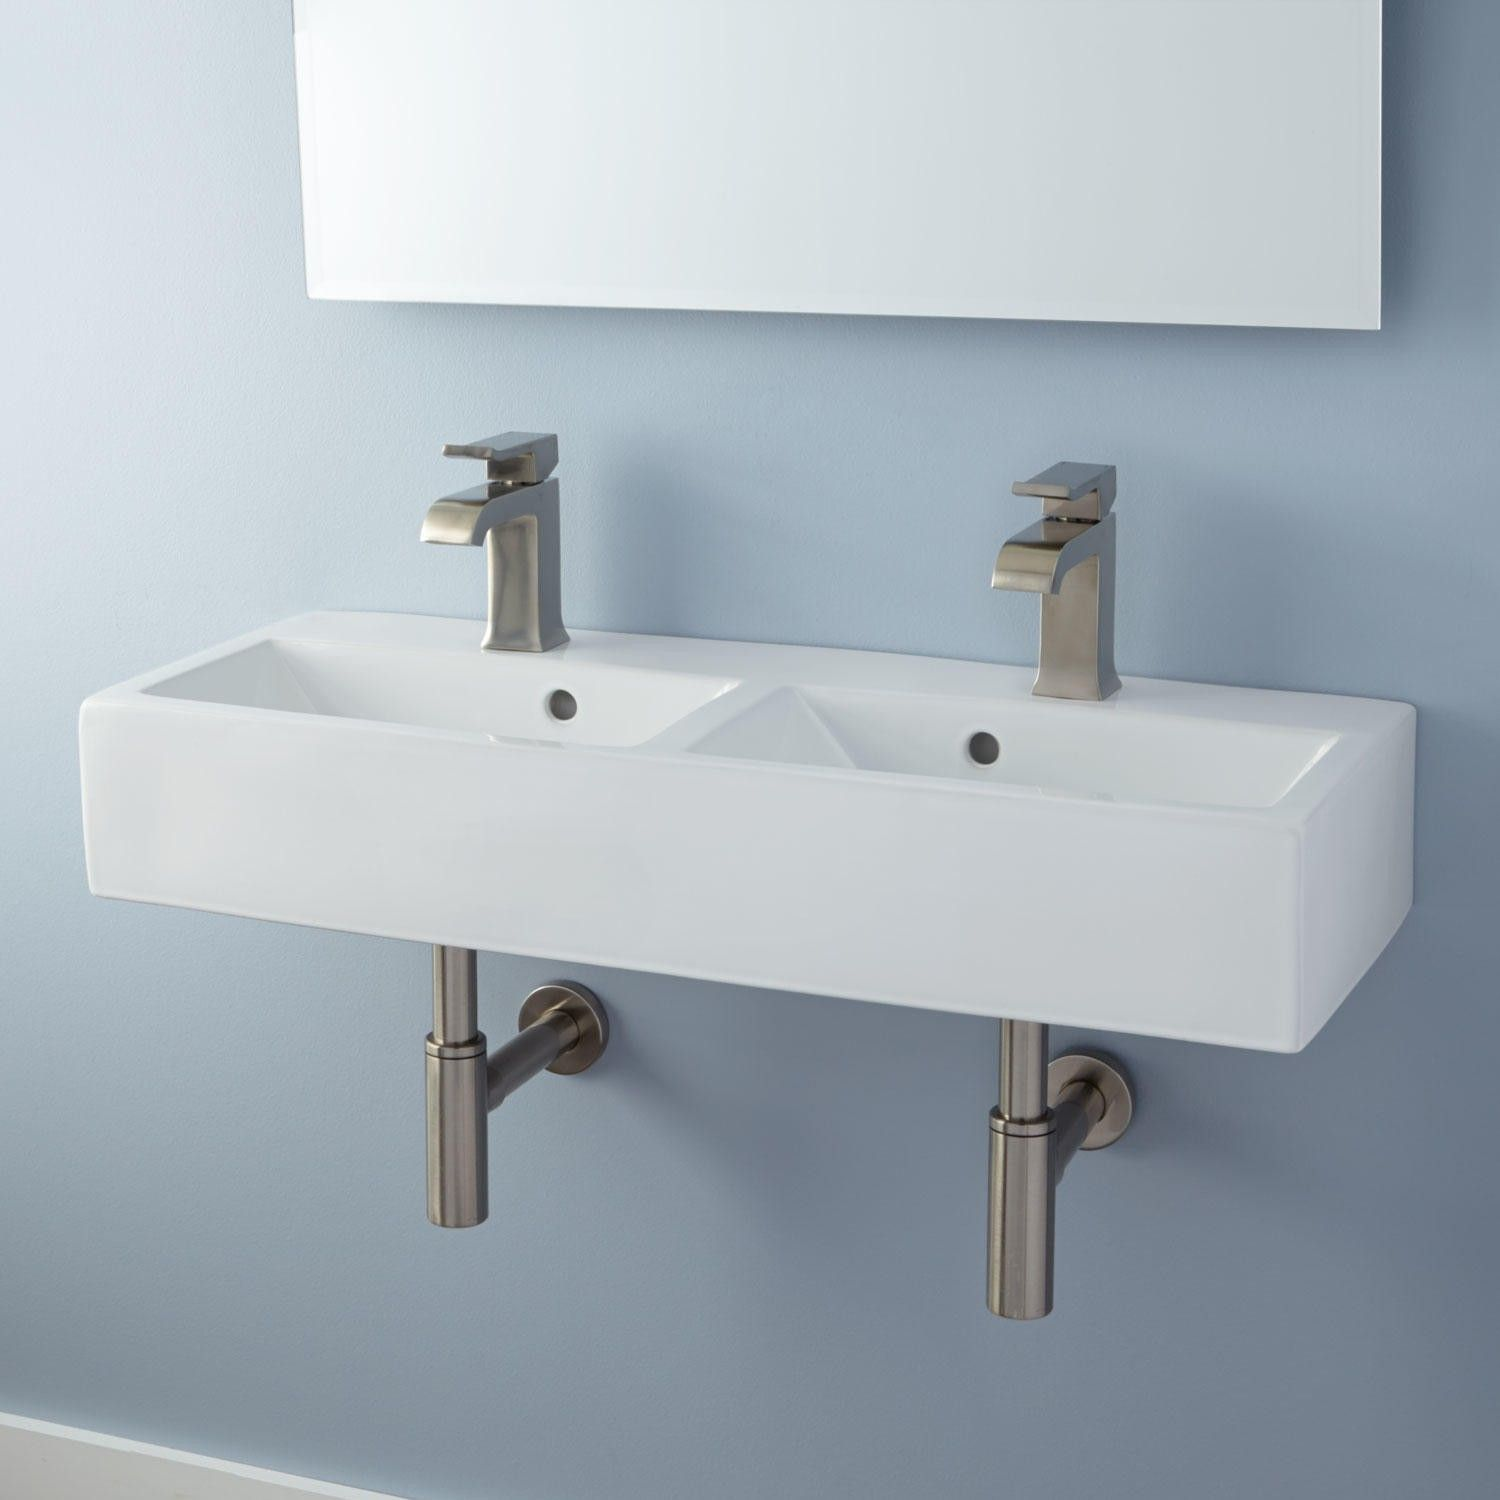 Wall hanging sink bathroom - Naiture Double Bowl Wall Mount Bathroom Sink With Oil Rub